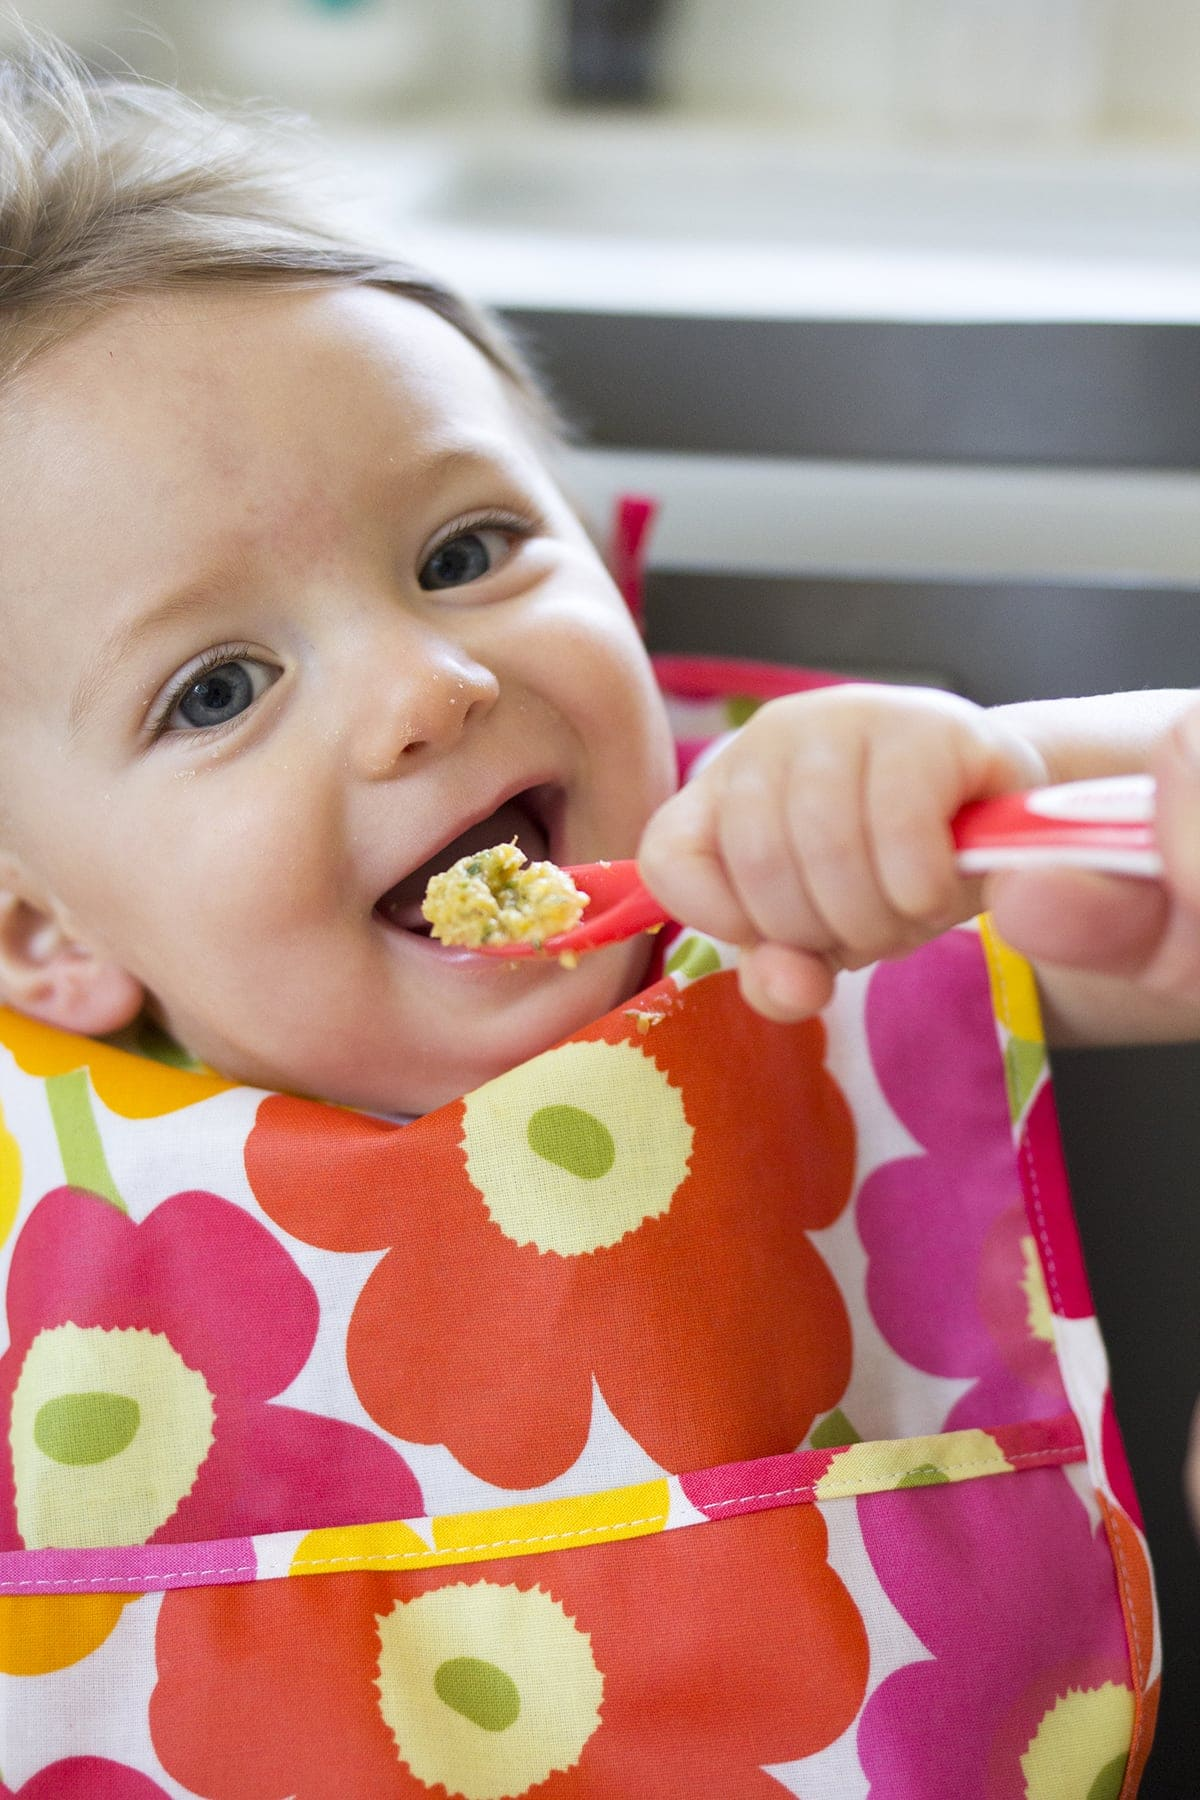 Lunch Ideas for Babies Spoon Feeding